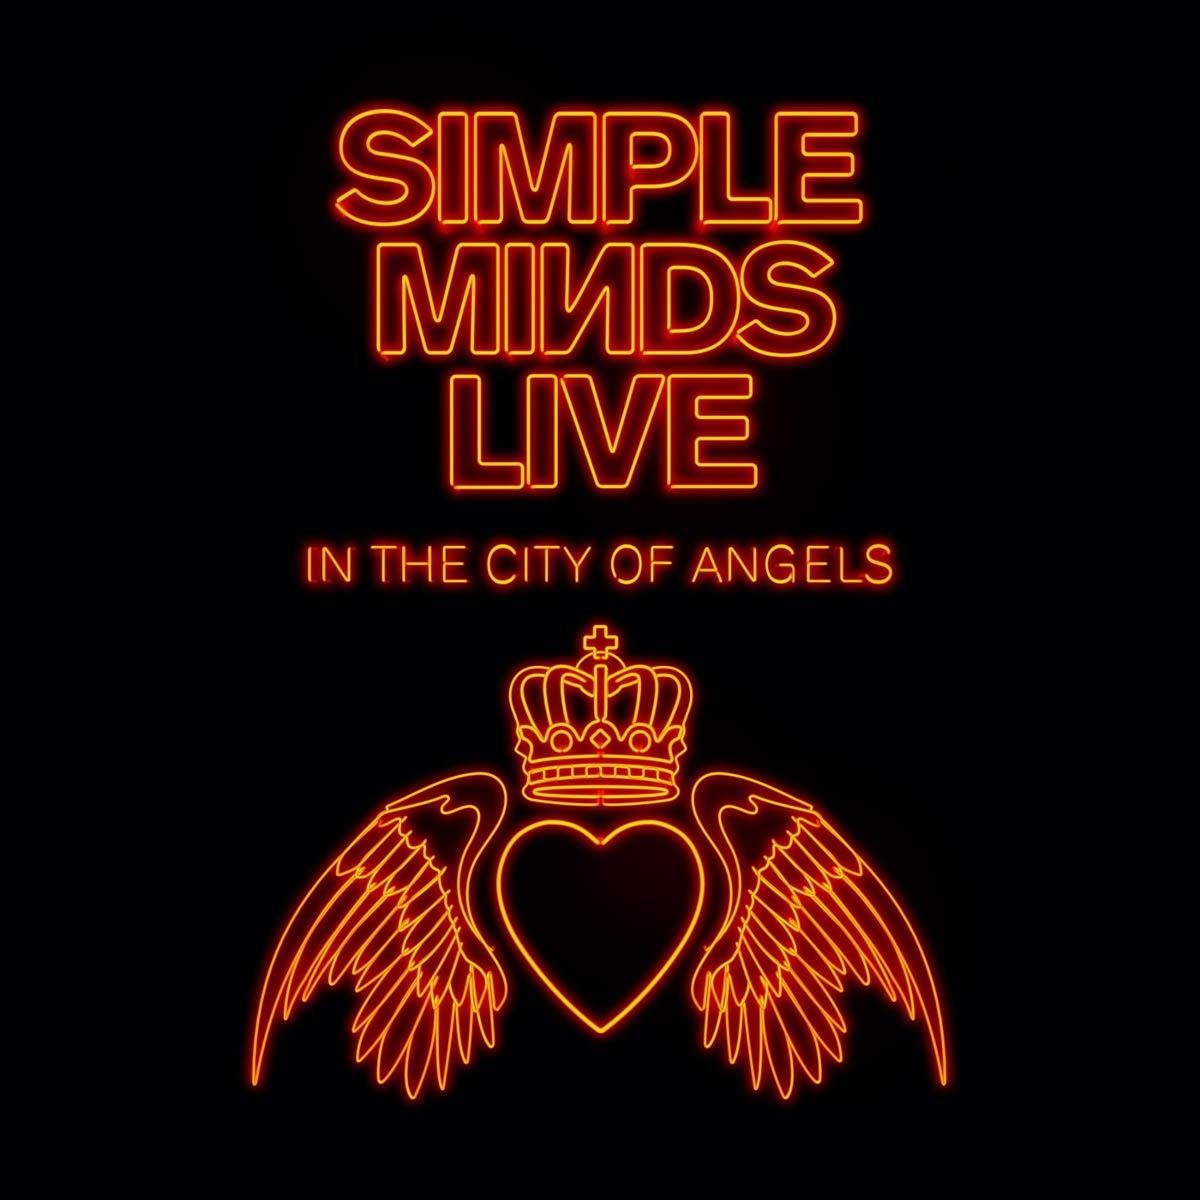 Simple Minds Live In The City Of Angels